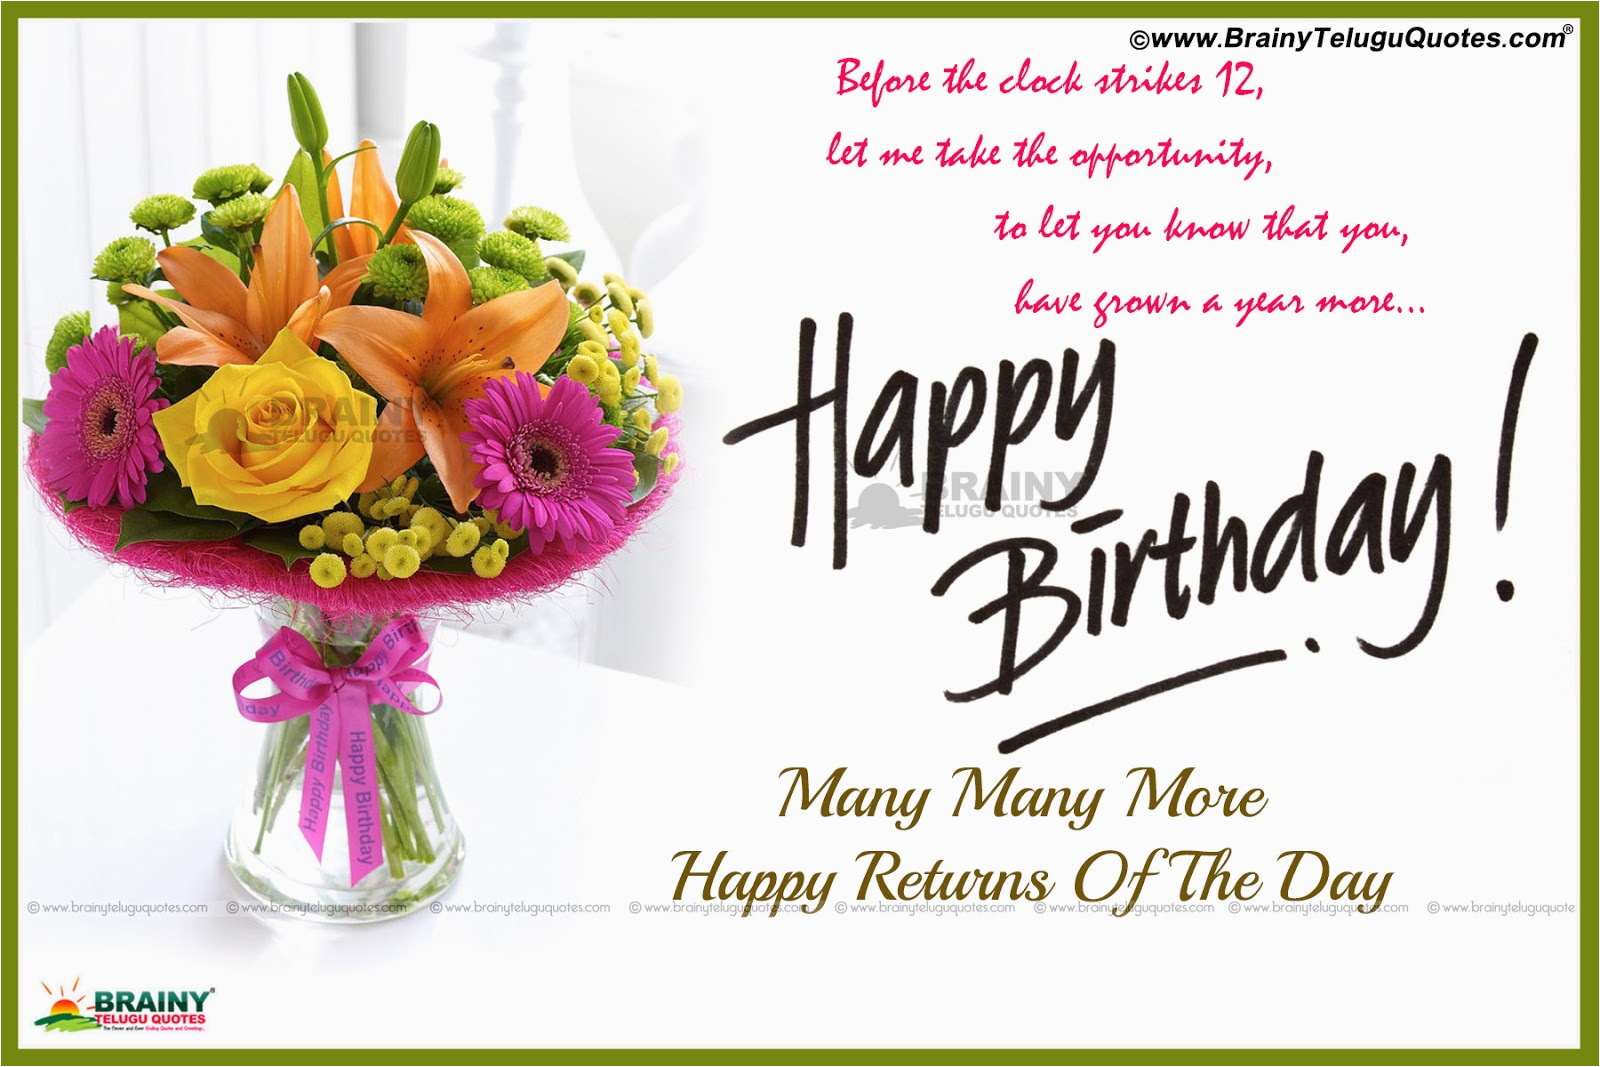 english best friend birthday wishes quotes greeting cards images messages with cake hd png images